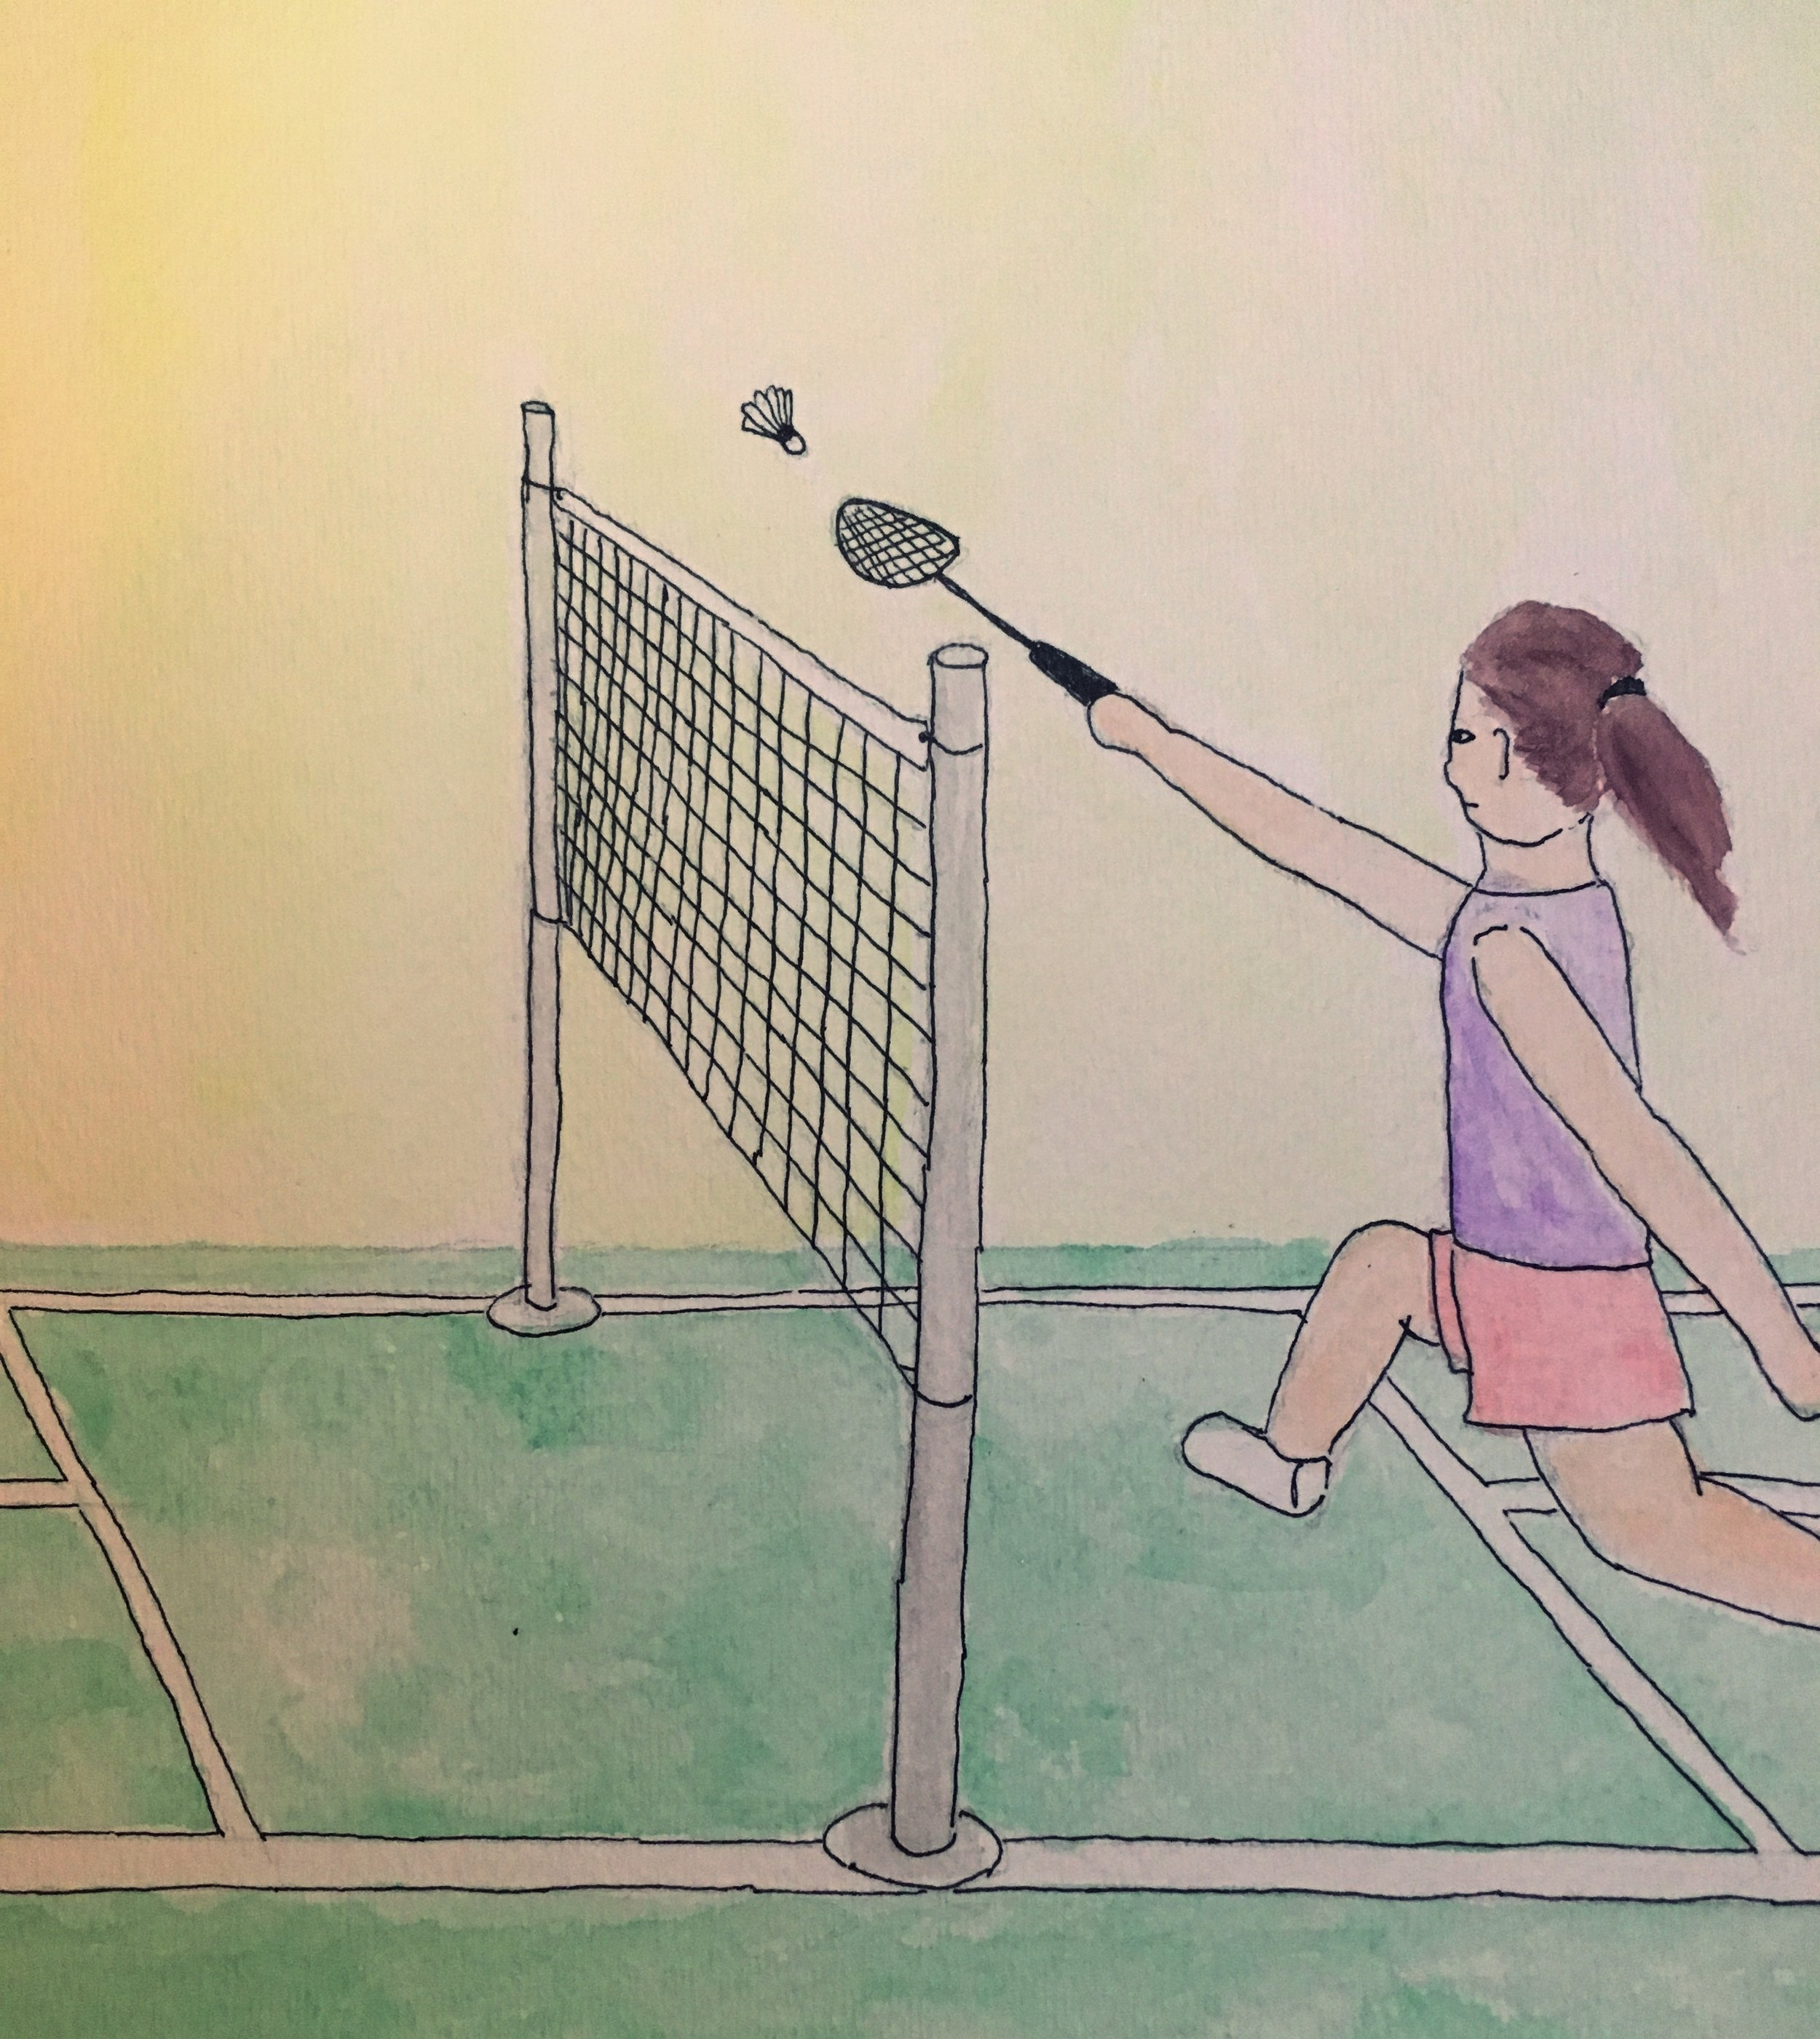 Attempting to play badminton